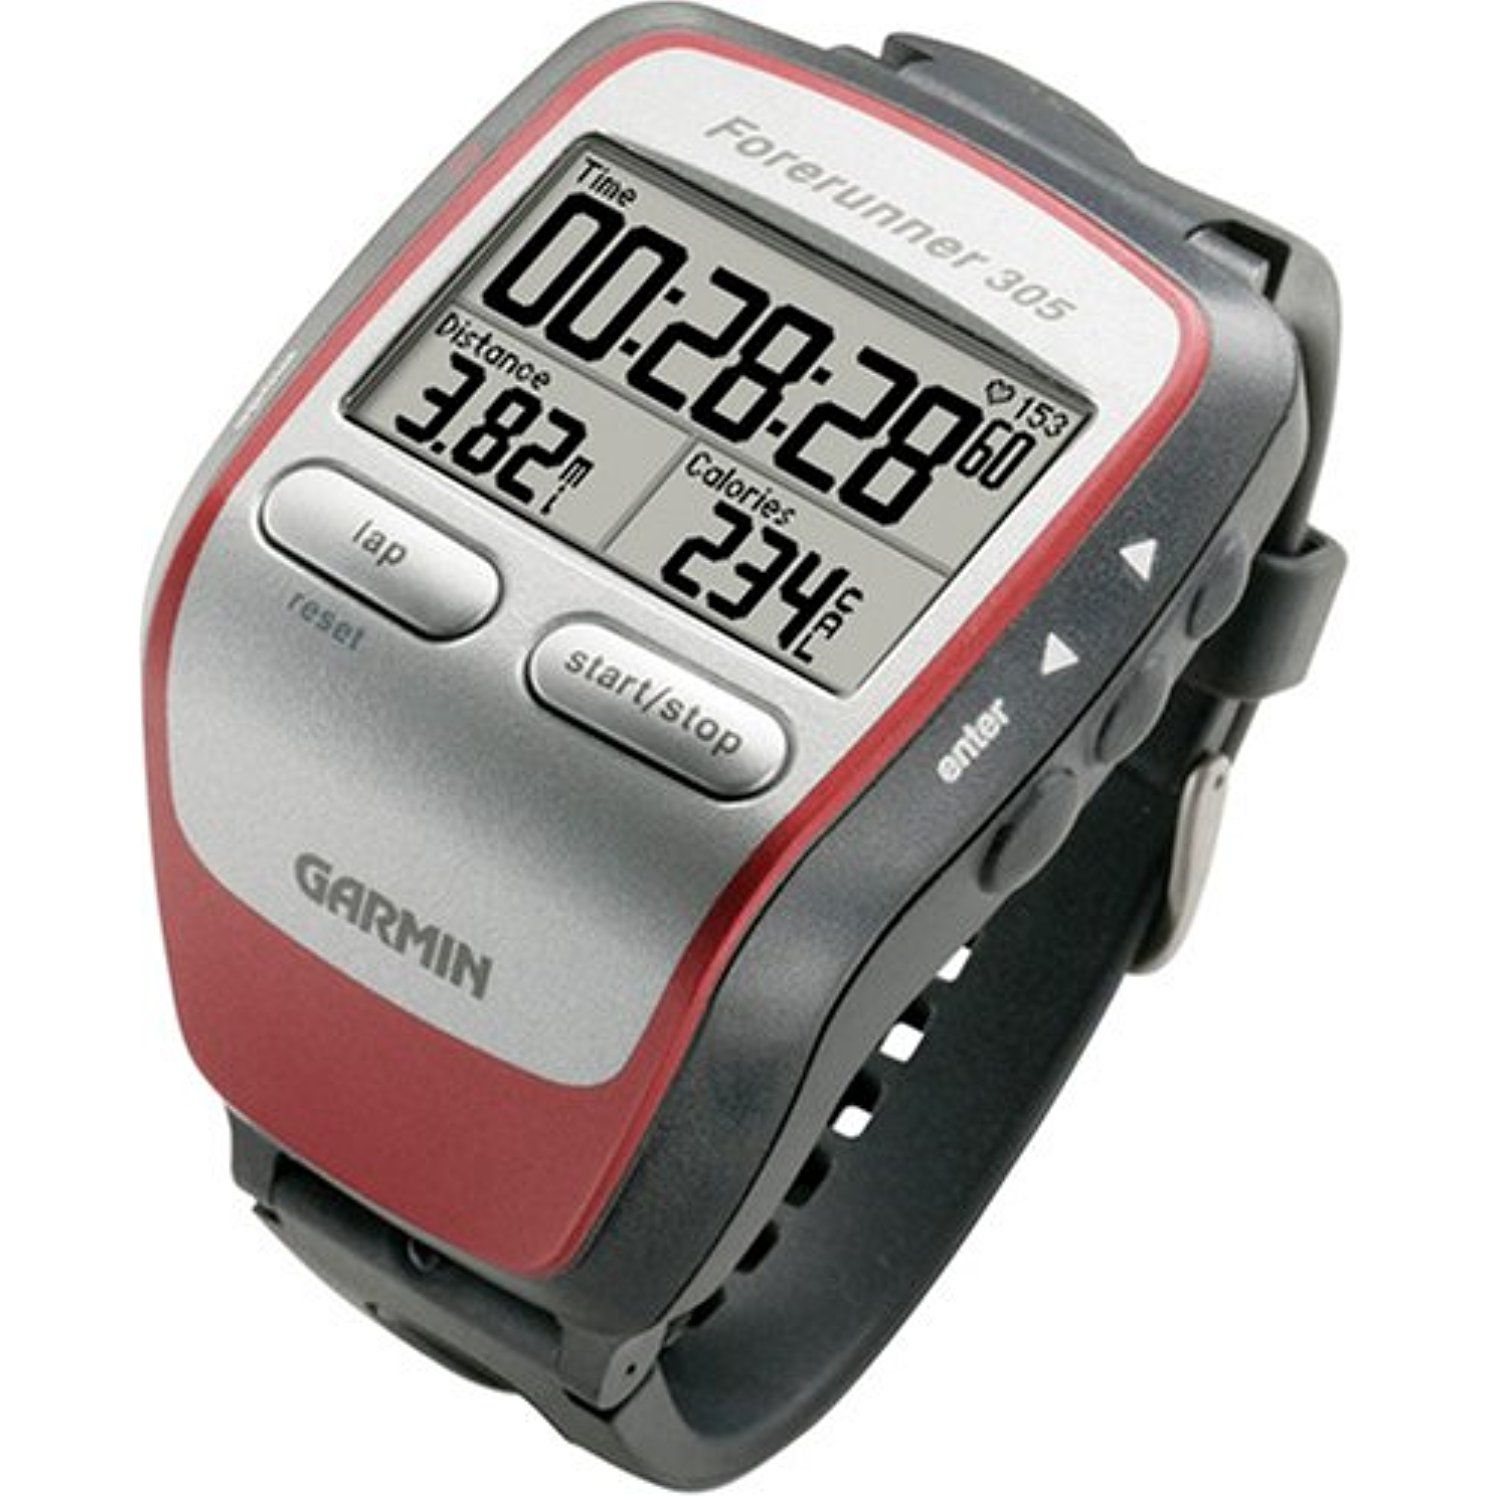 Garmin Forerunner 305 GPS Receiver With Heart Rate Monitor Discontinued by Manufacturer